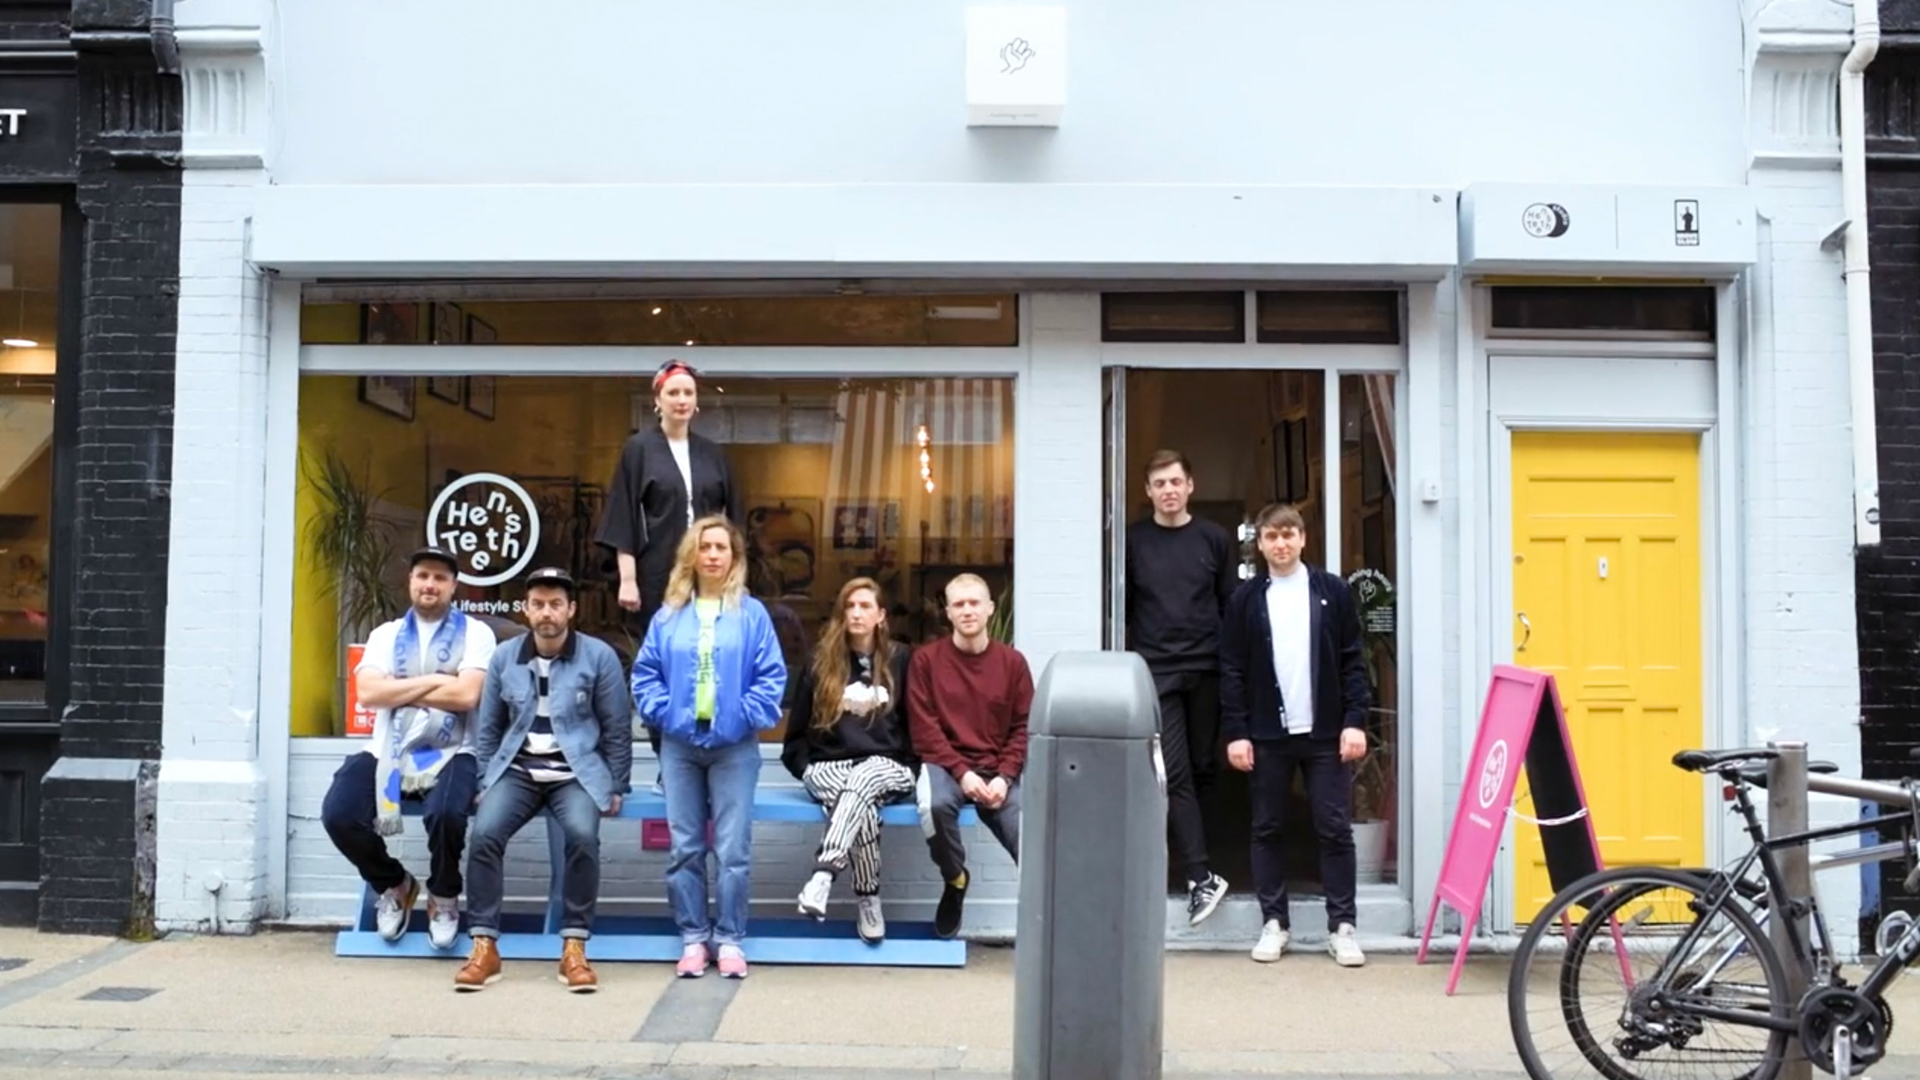 Hen's Teeth team stand outside their previous home on Fade Street